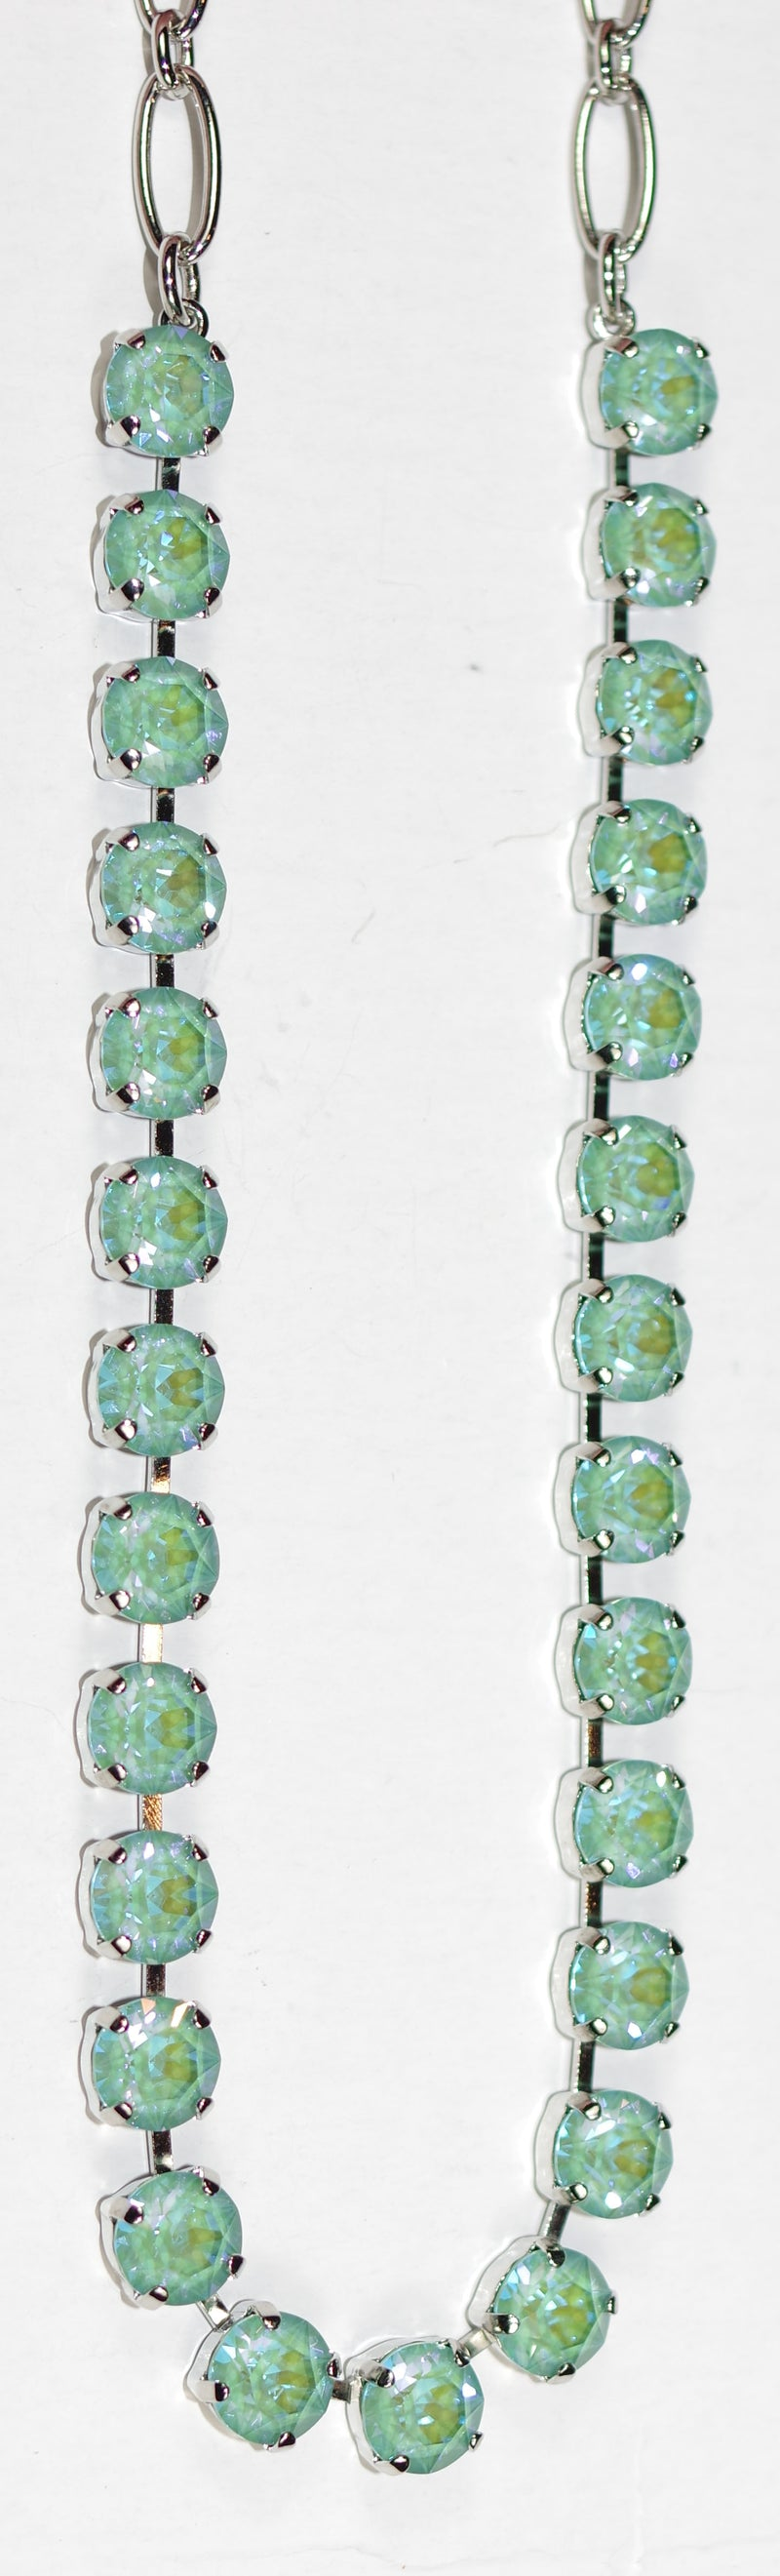 "MARIANA NECKLACE BETTE SUN KISSED: blue/green 1/4"" stones in silver rhodium setting, 17"" adjustable chain"